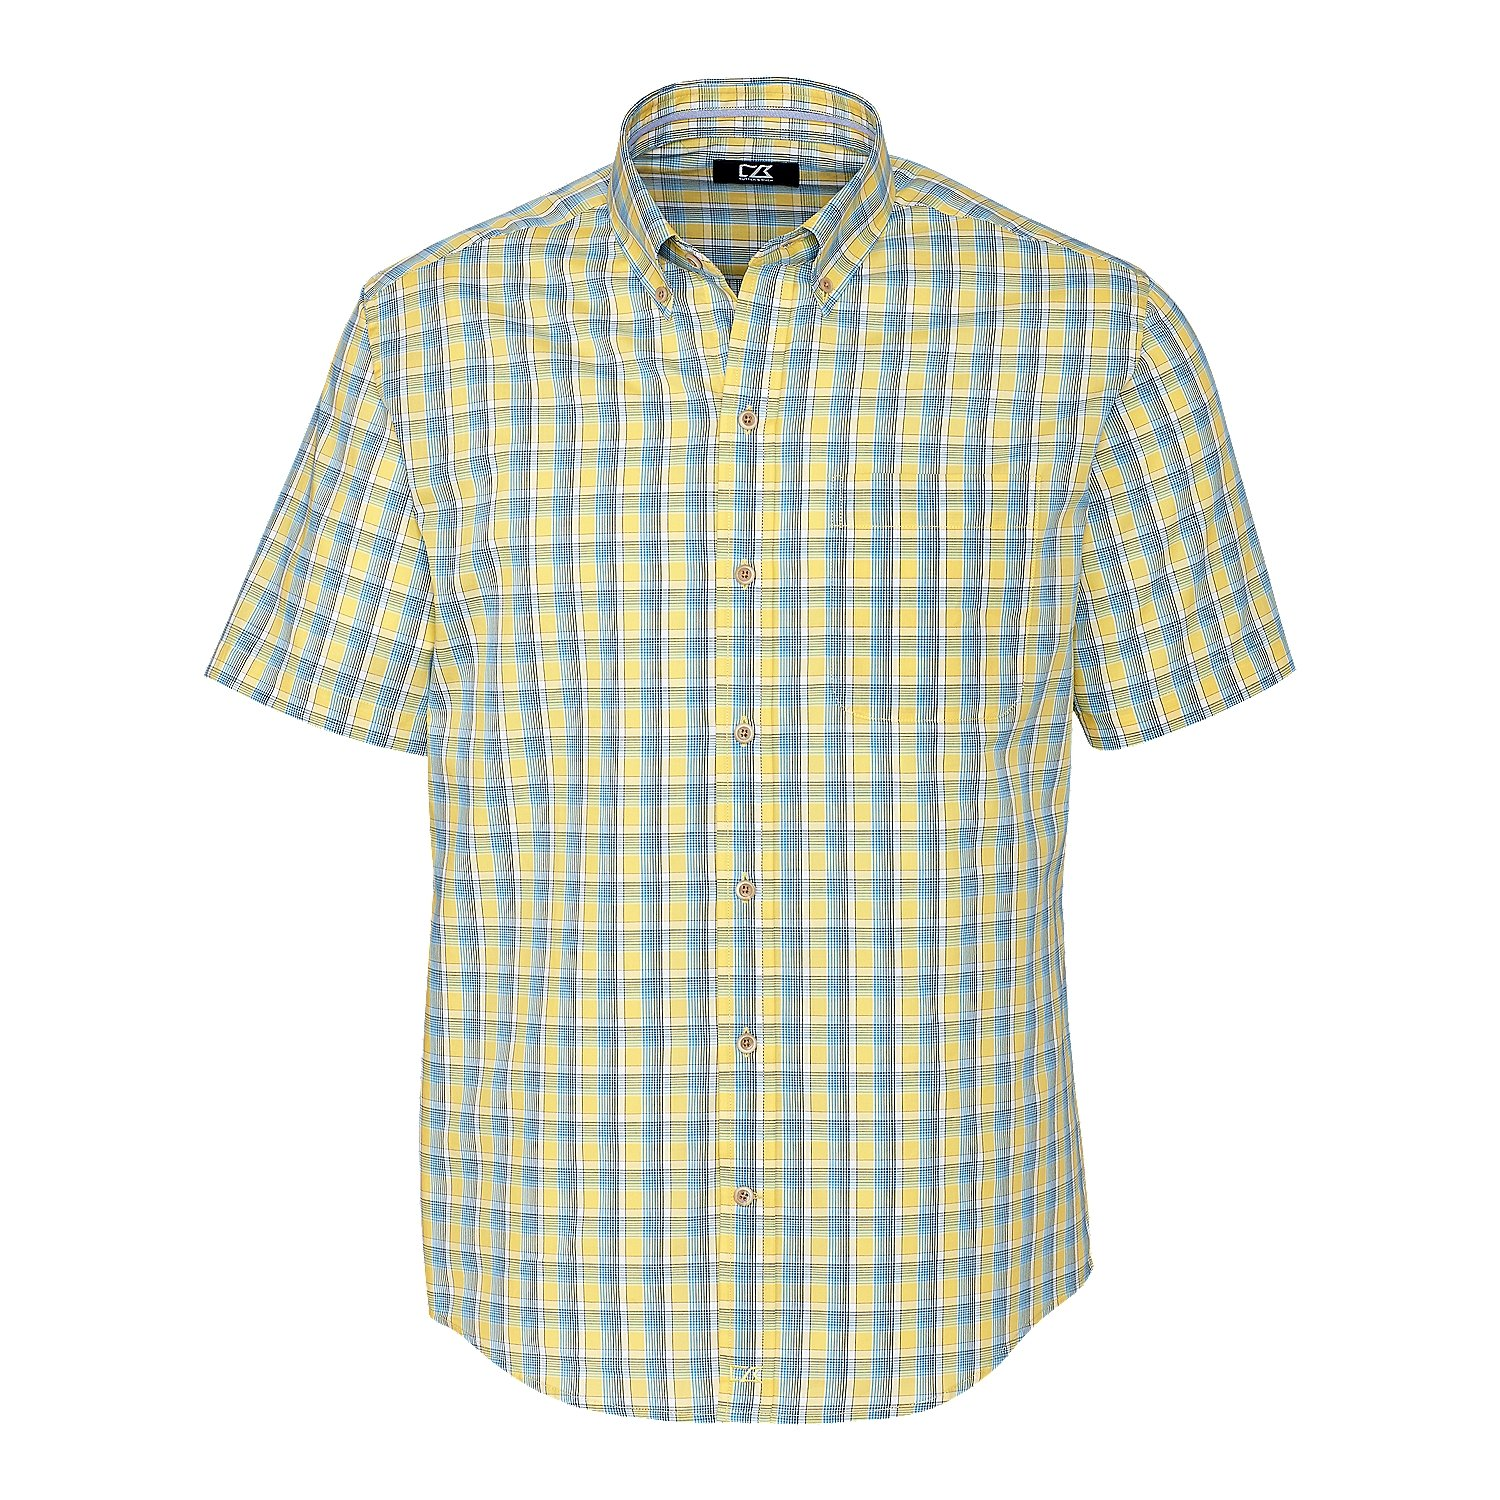 Cutter & Buck BCW09555 Boys' Short Sleeve Wrinkle Free Luis Rey Check, Multi-3XB